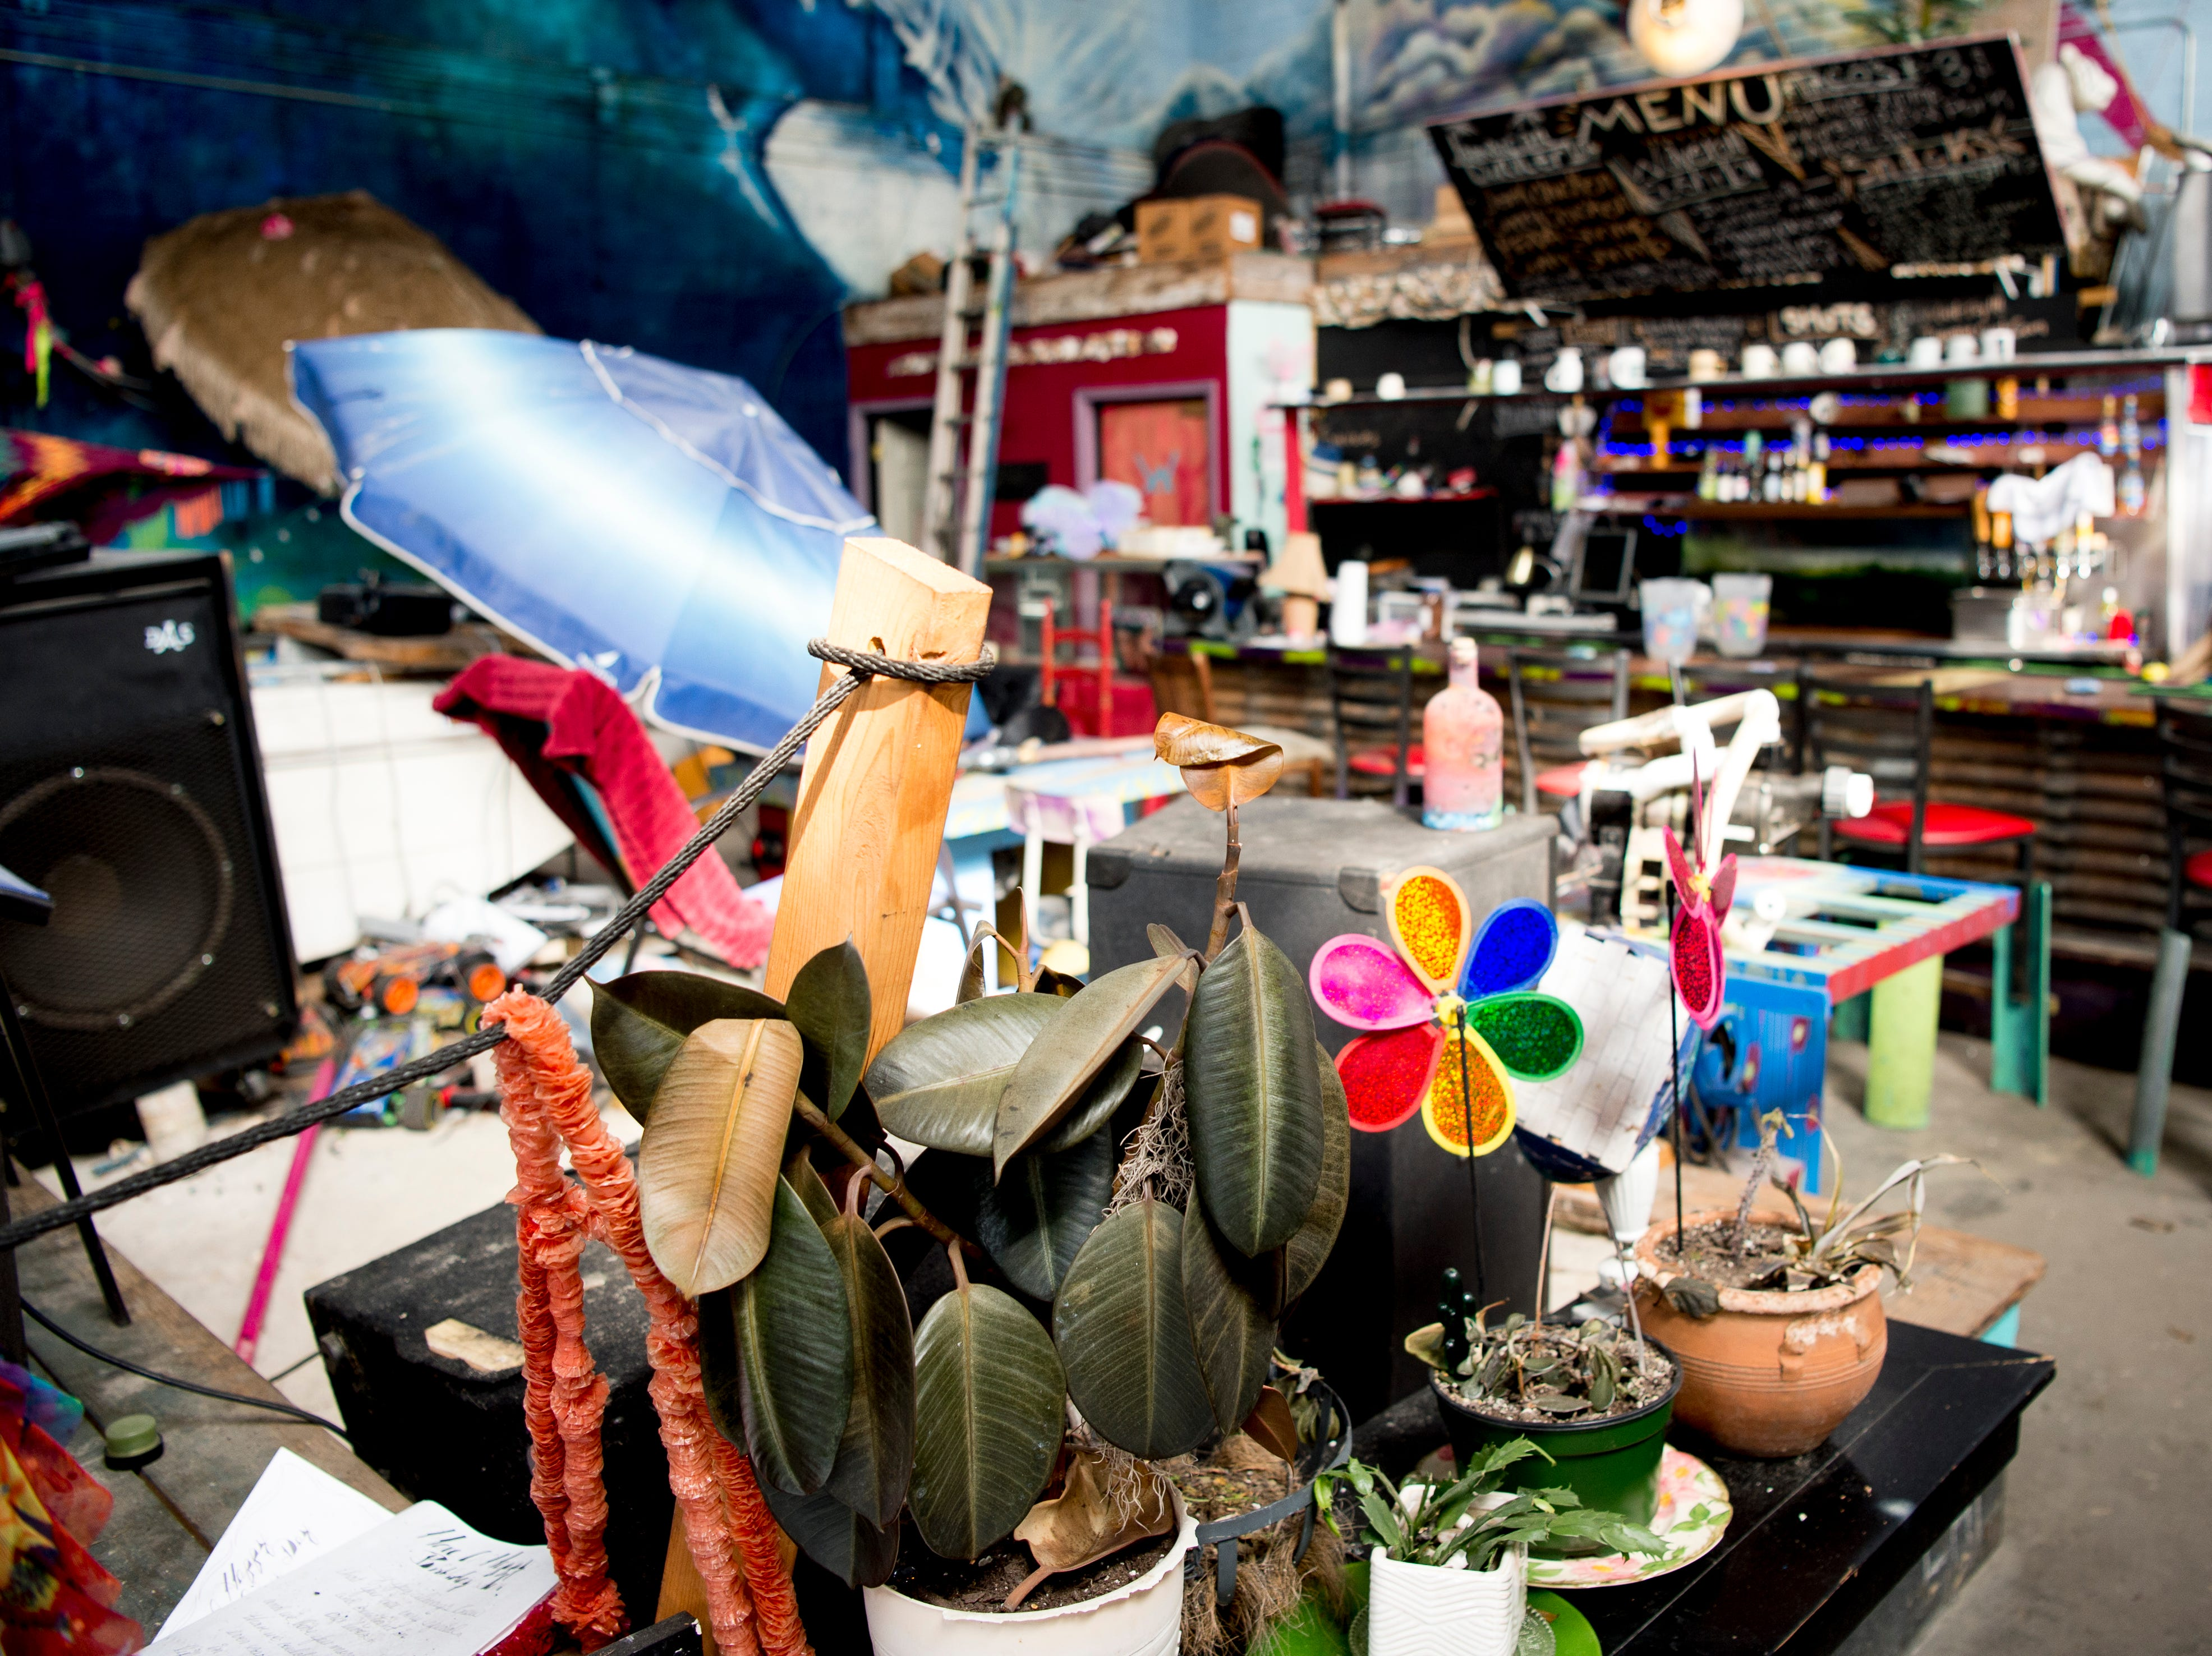 Various decorations sit beside the stage at Bar Marley in Knoxville, Tennessee on Thursday, February 14, 2019. The Caribbean-themed Bar Marley is facing possible acquisition and condemnation by KCDC due to code violations.